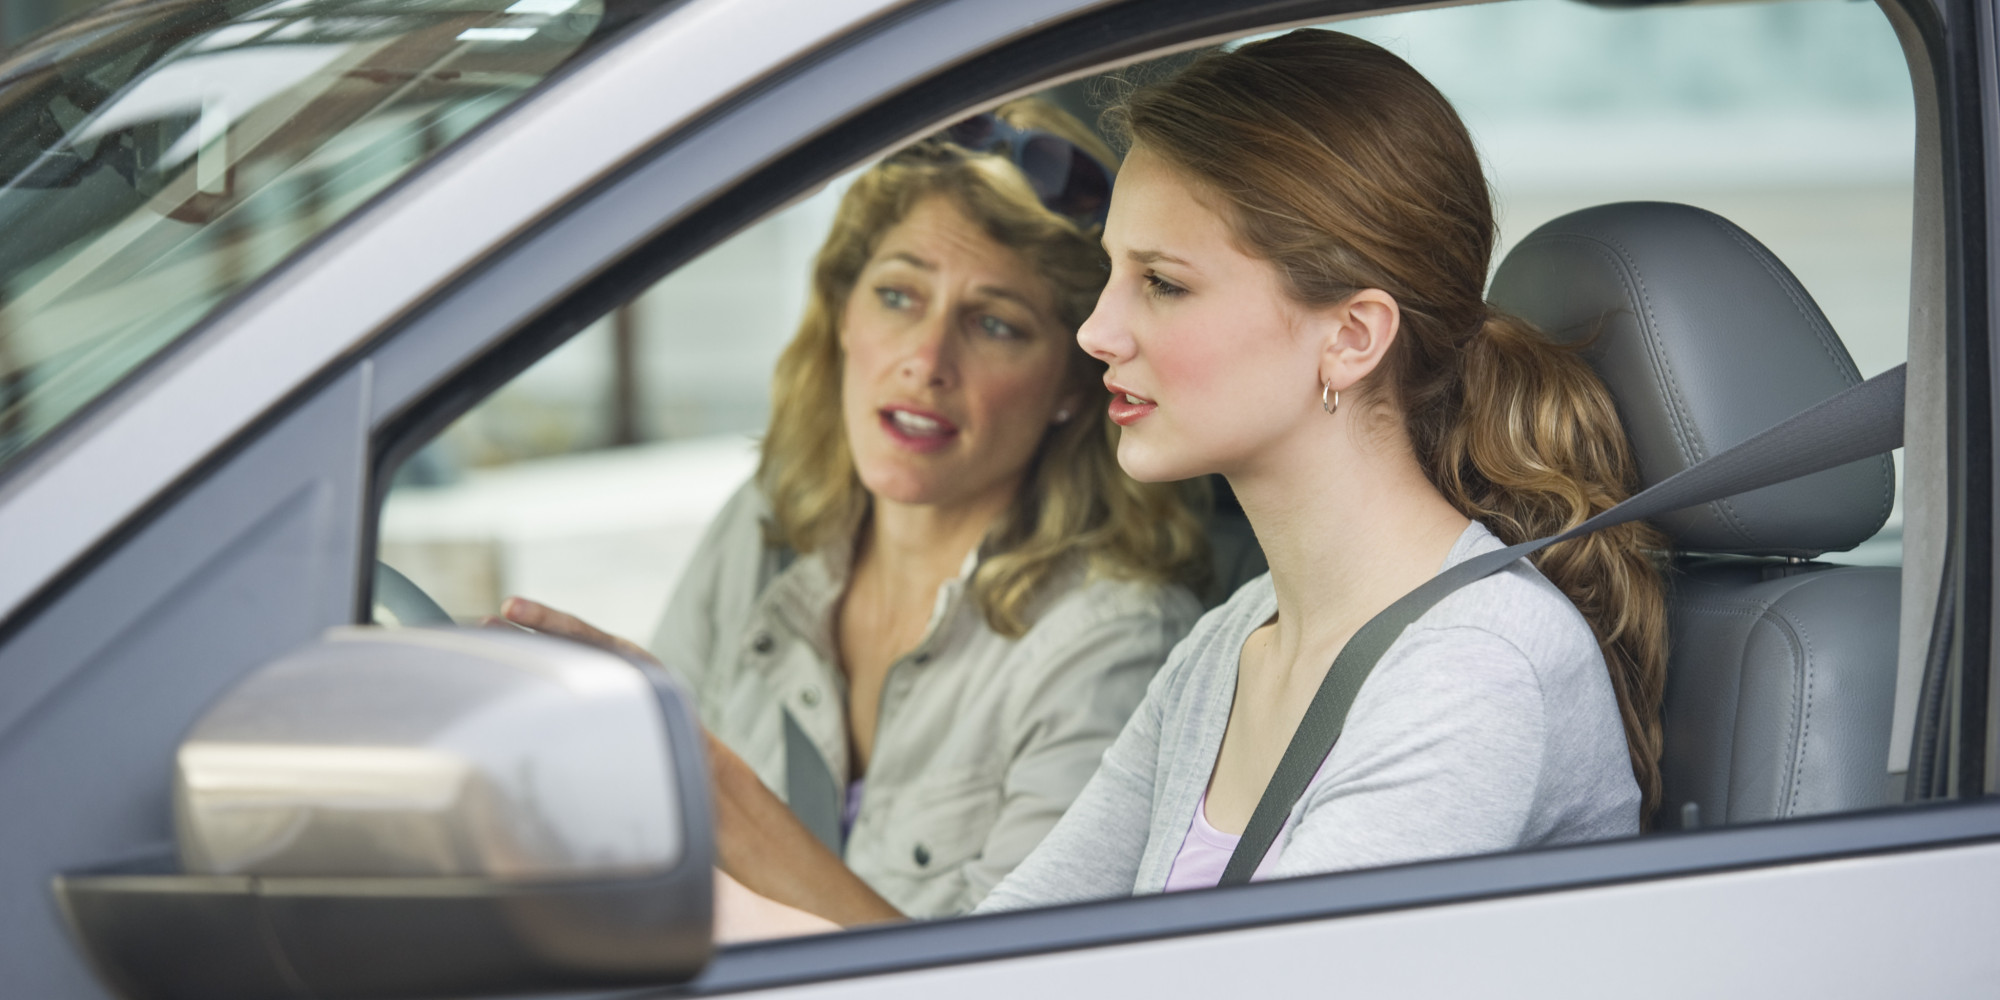 Safe drive teen can